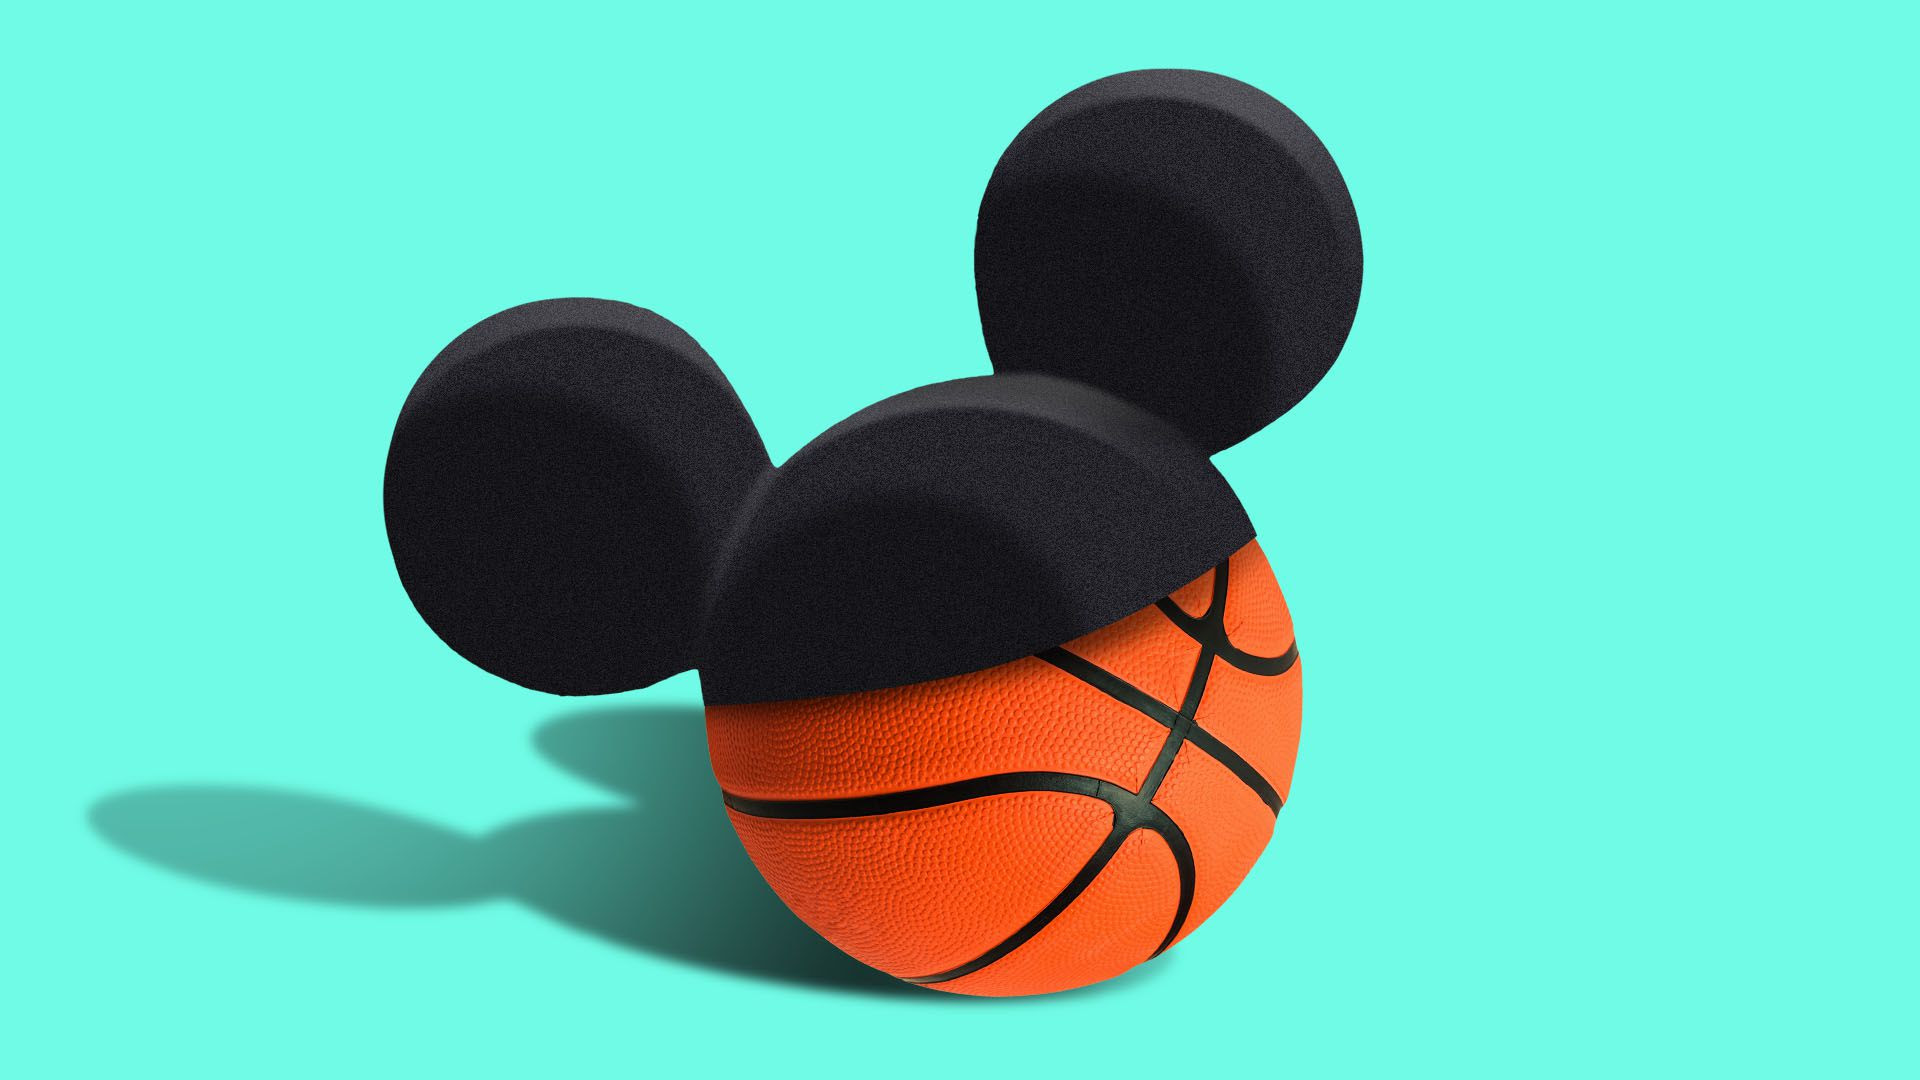 Illustration of a basketball wearing a mickey mouse ear hat